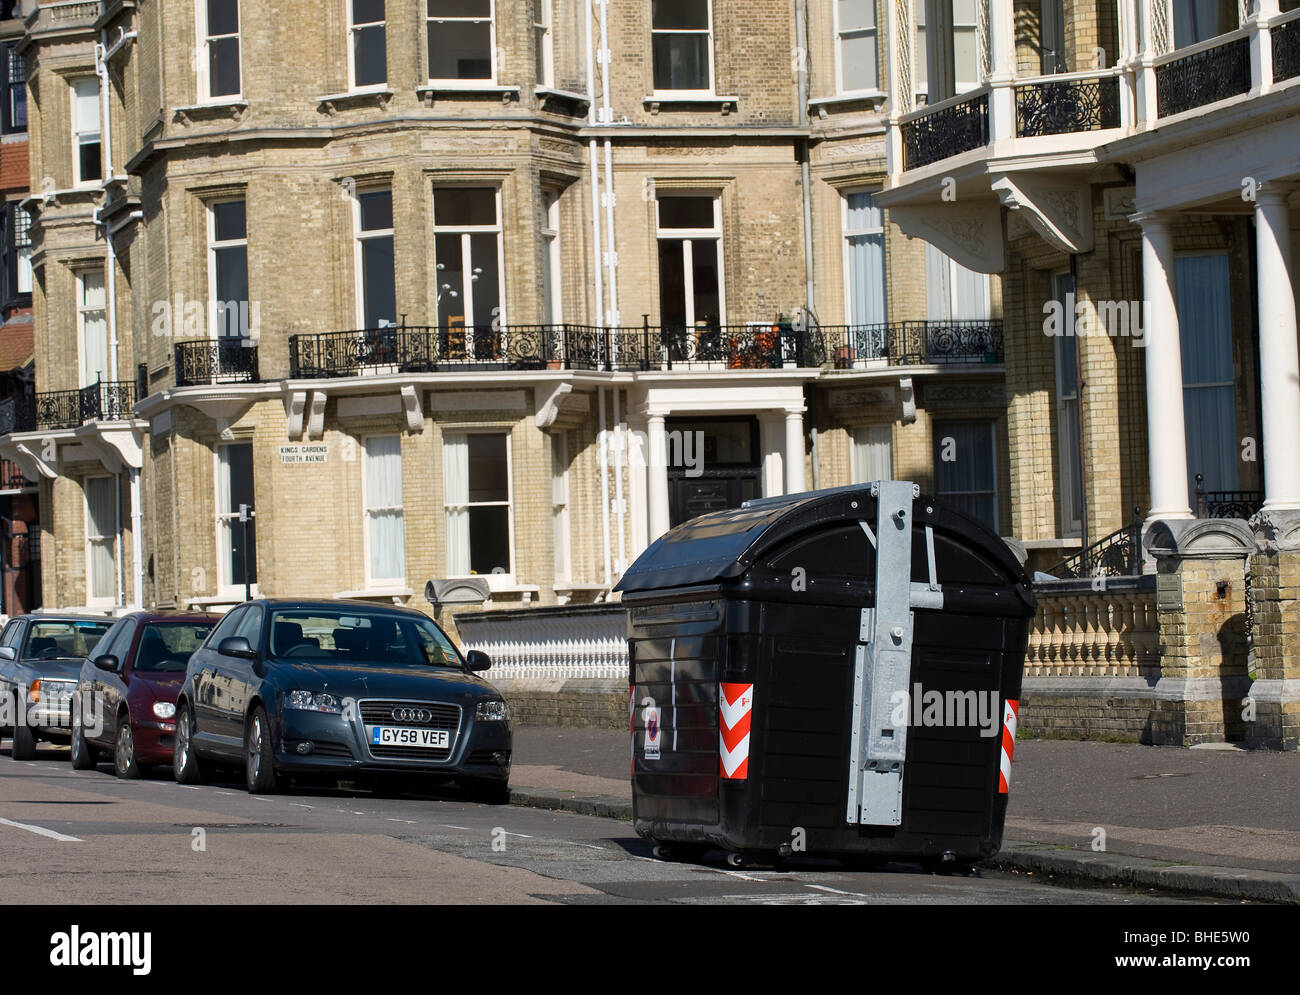 Communal rubbish skips on Kings Gardens and Fourth Avenue, Hove, West Sussex, 25th April 2009. - Stock Image